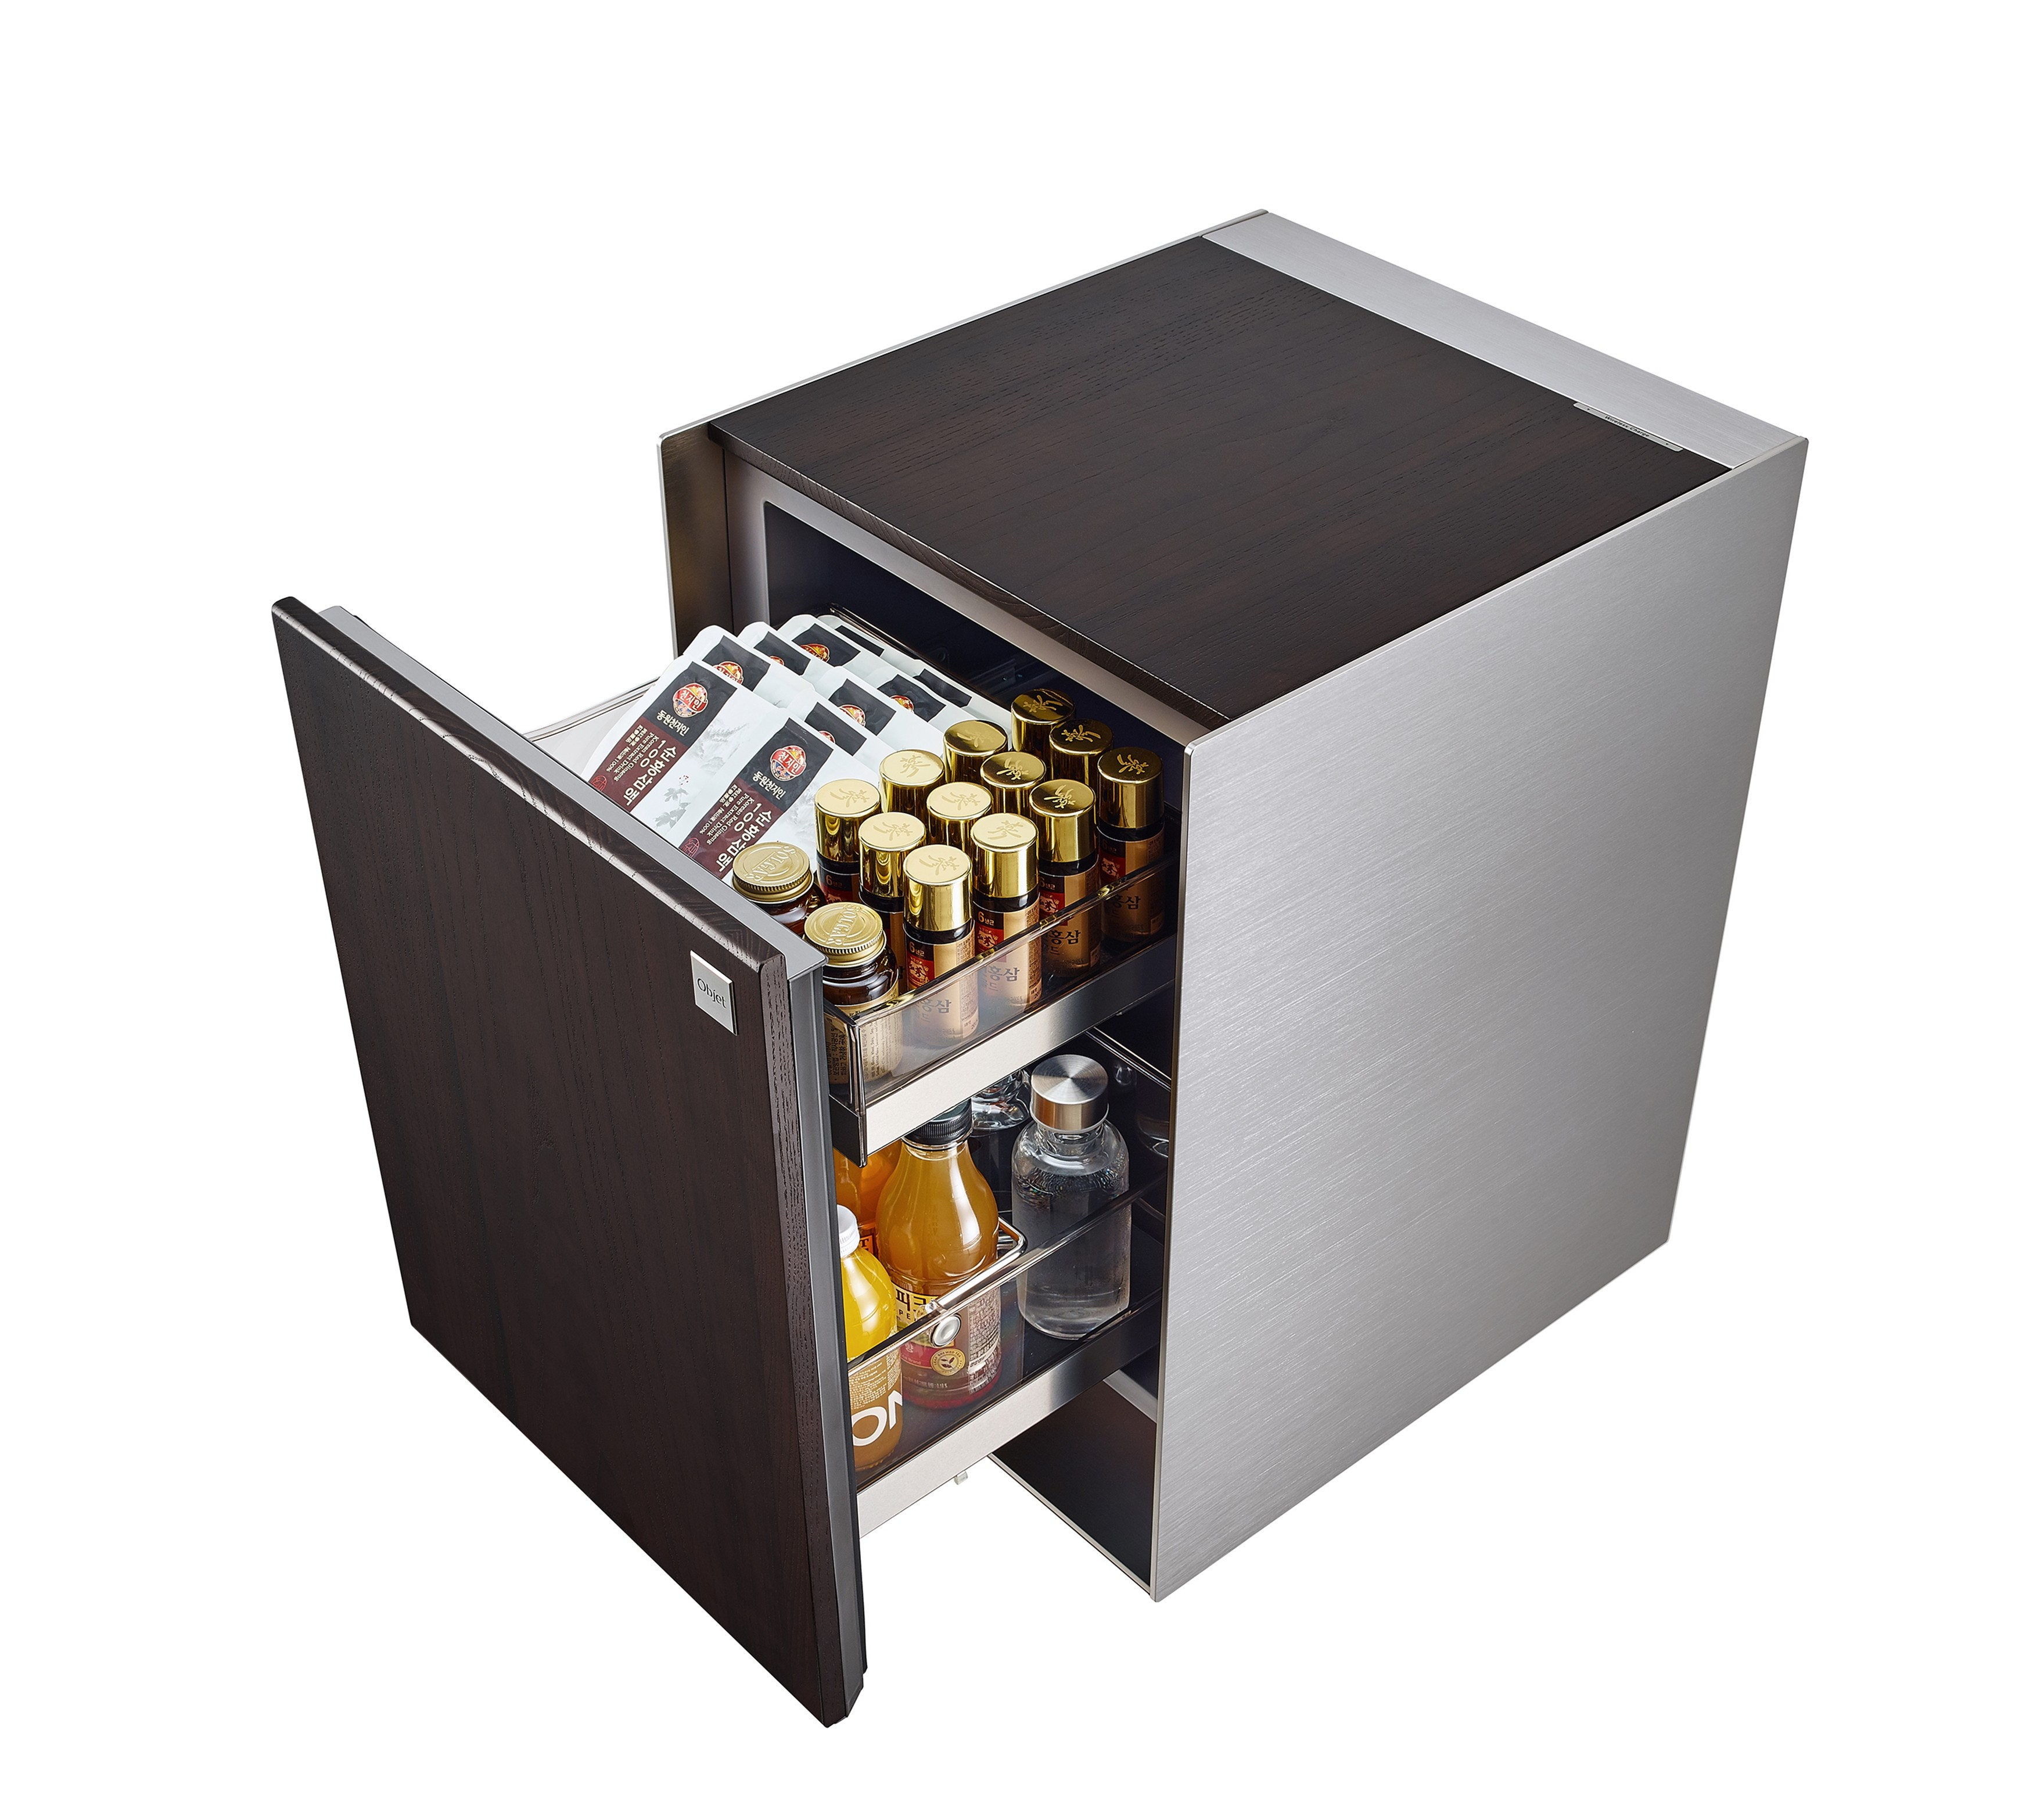 View of LG OBJET Refrigerator with door opened to reveal beverages and skincare products